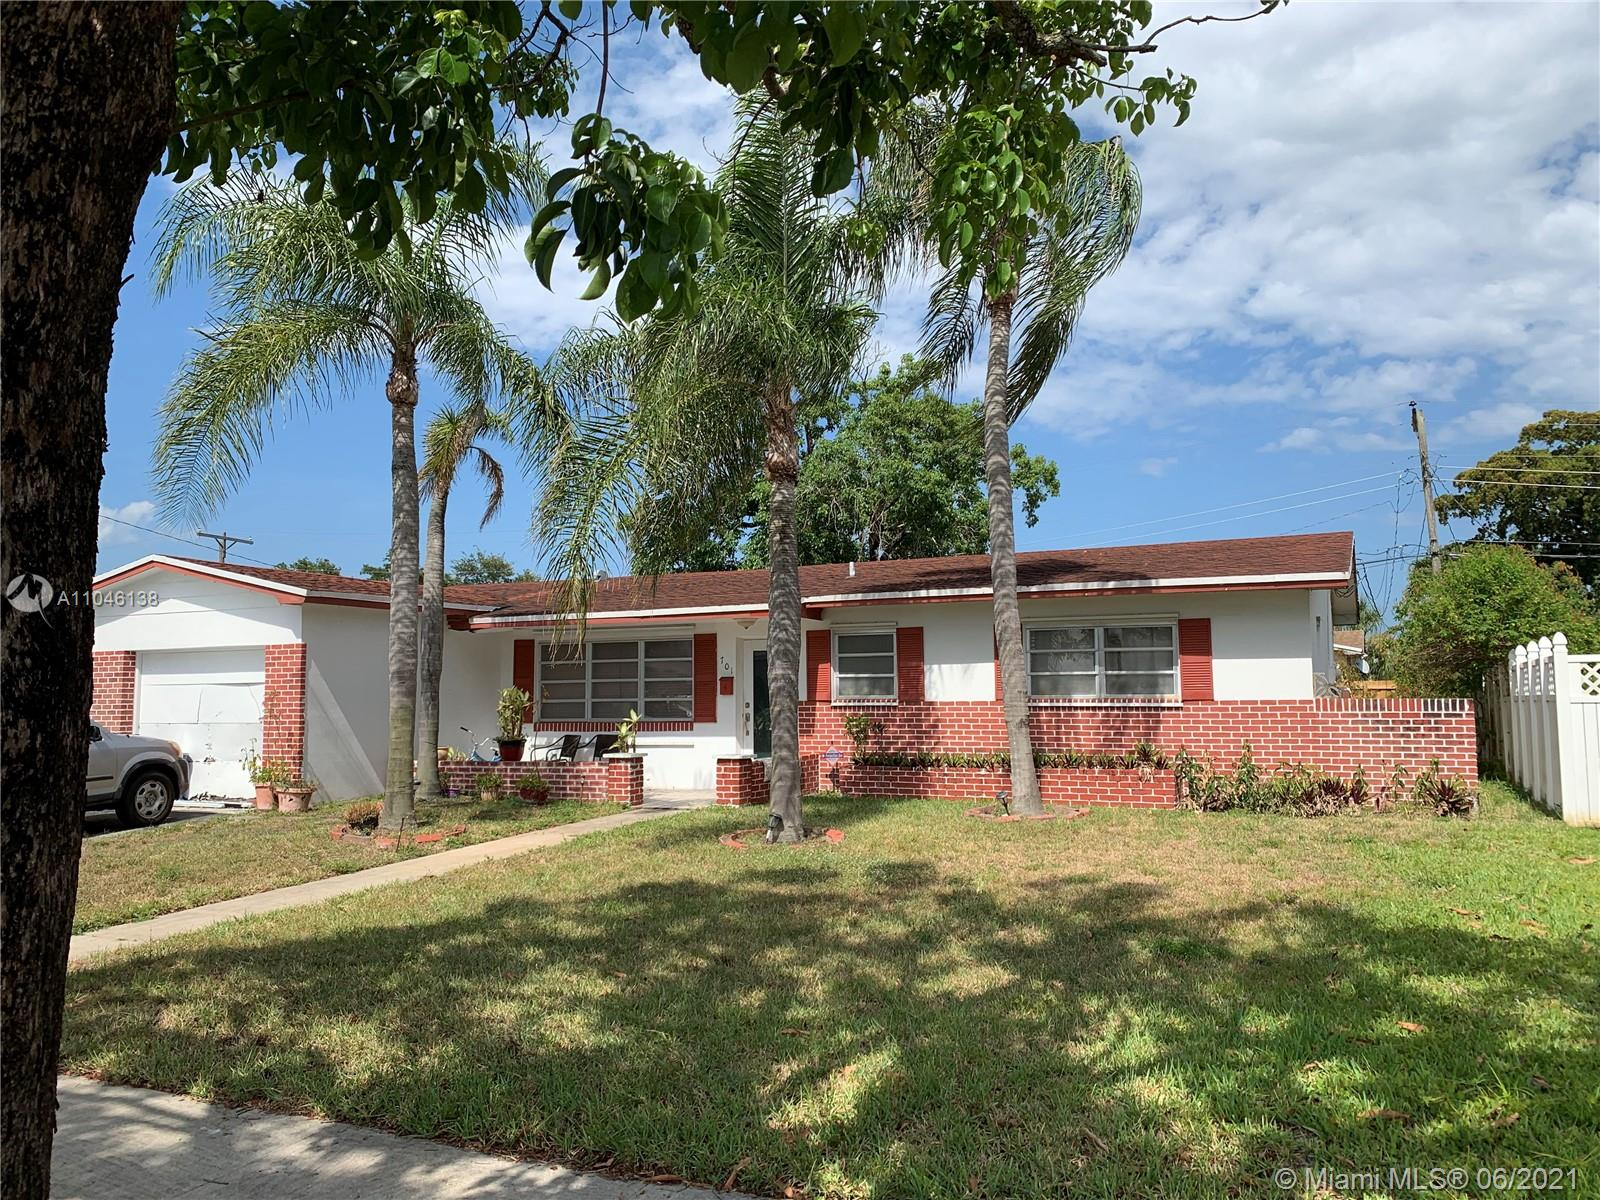 Boulevard Heights - 701 NW 78th Ave, Pembroke Pines, FL 33024